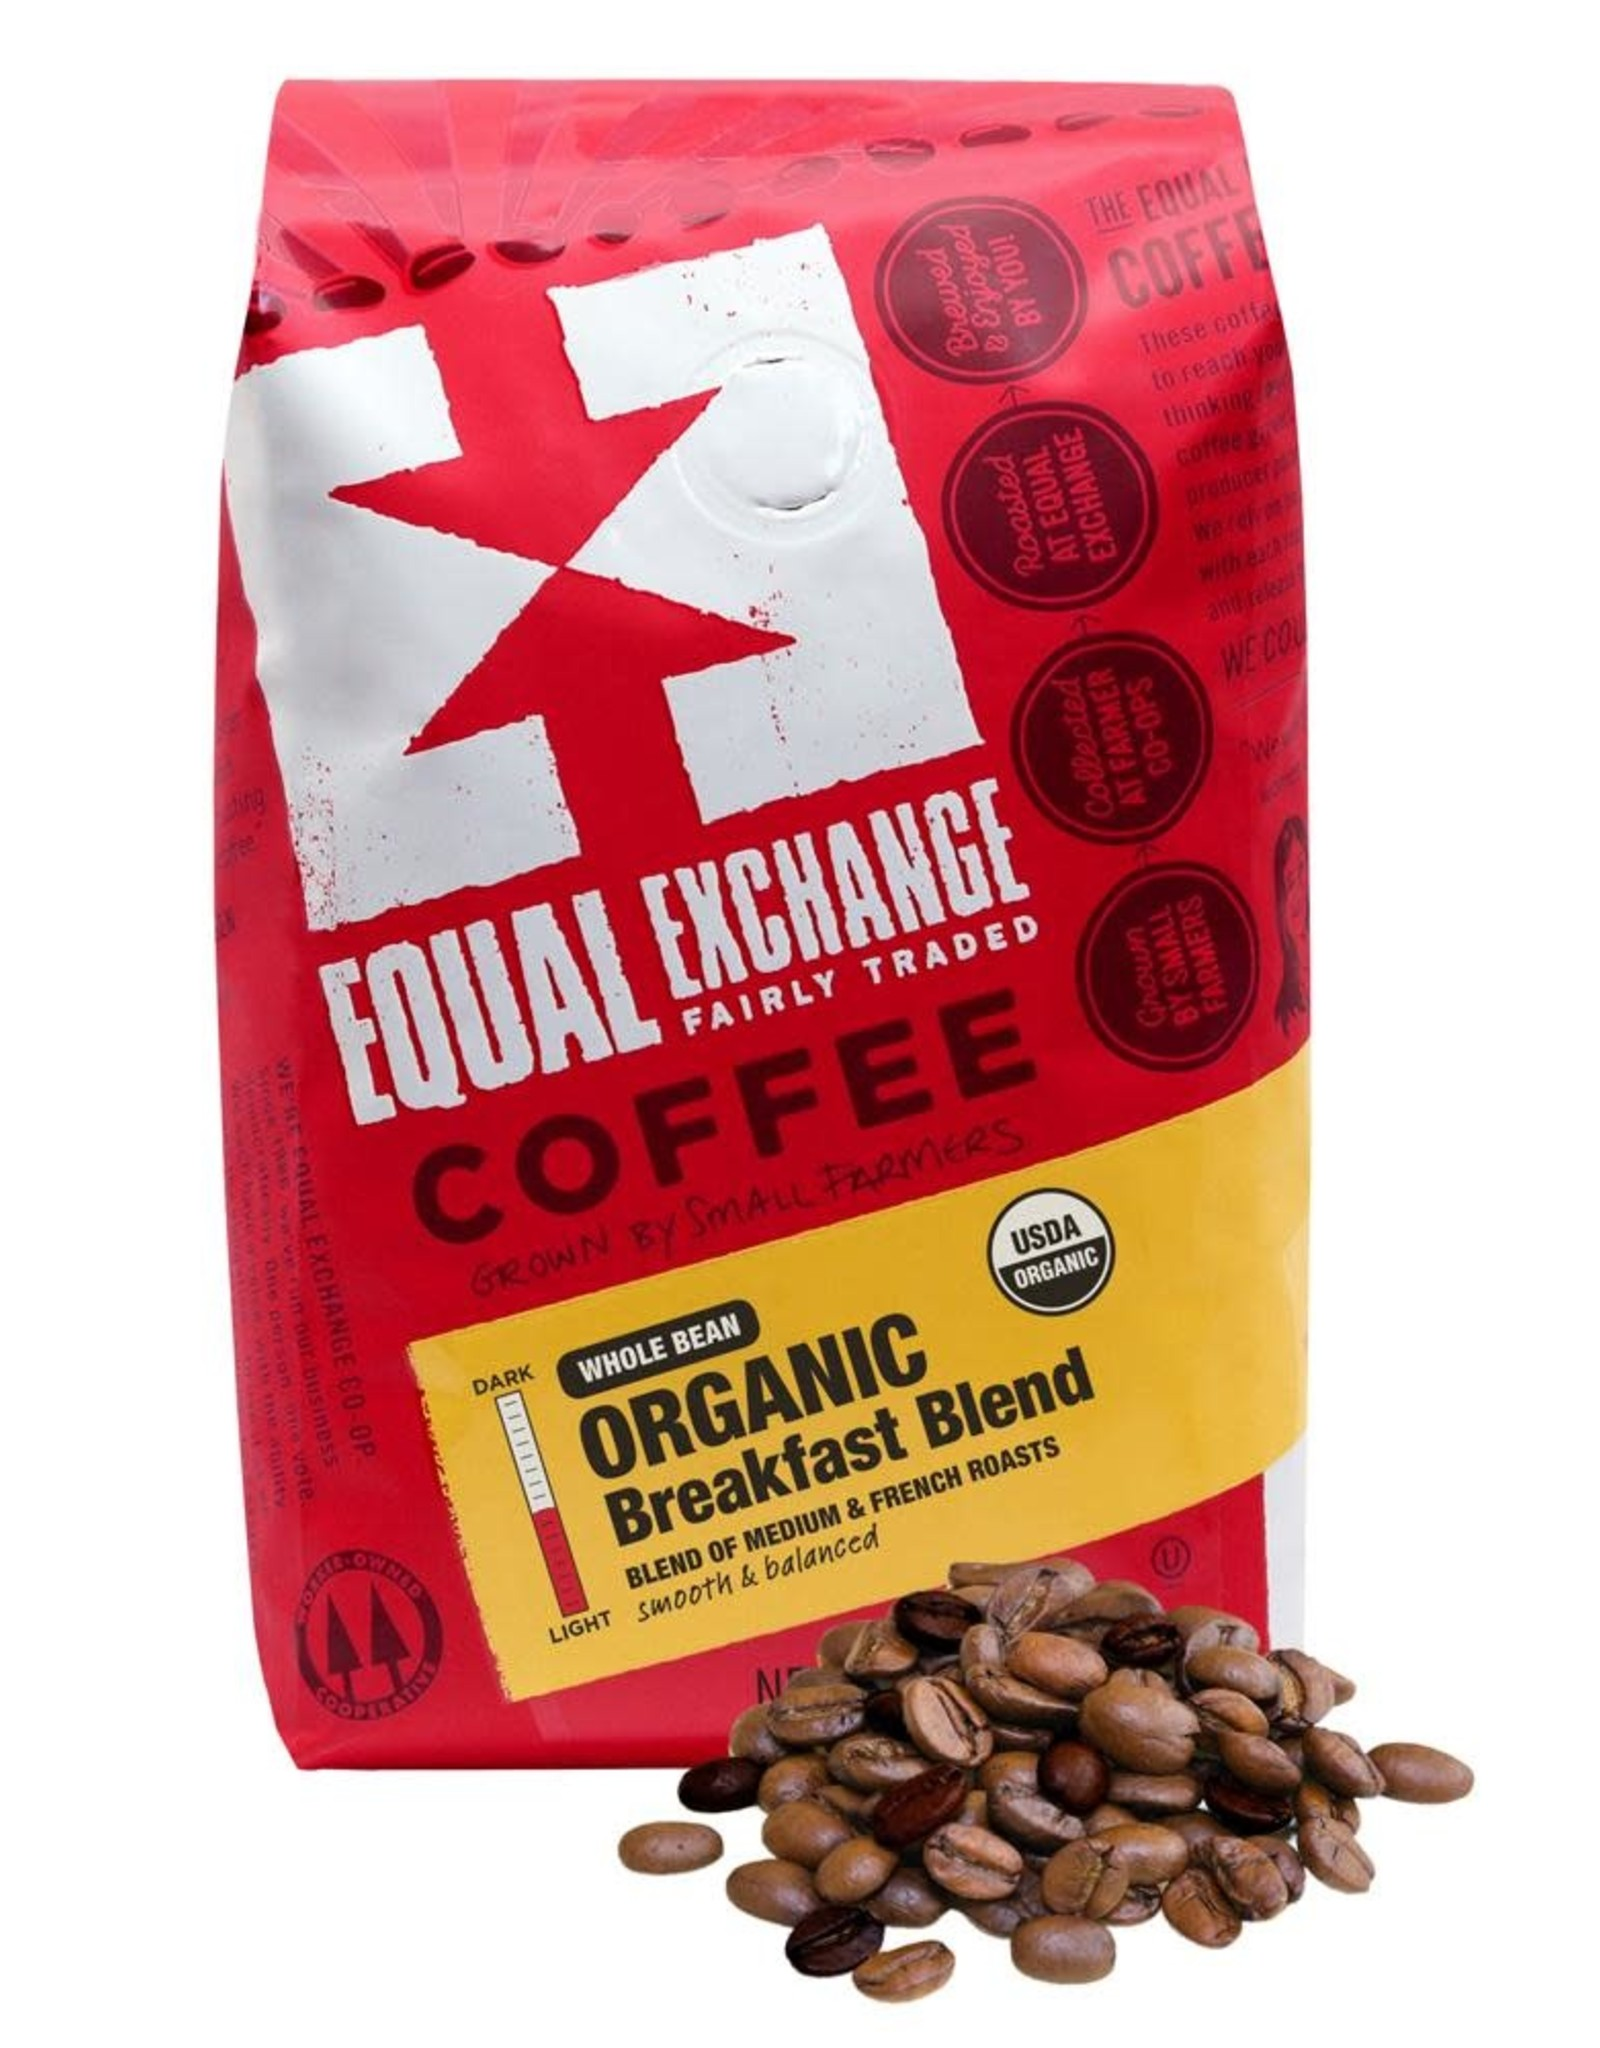 Breakfast Blend Organic Coffee